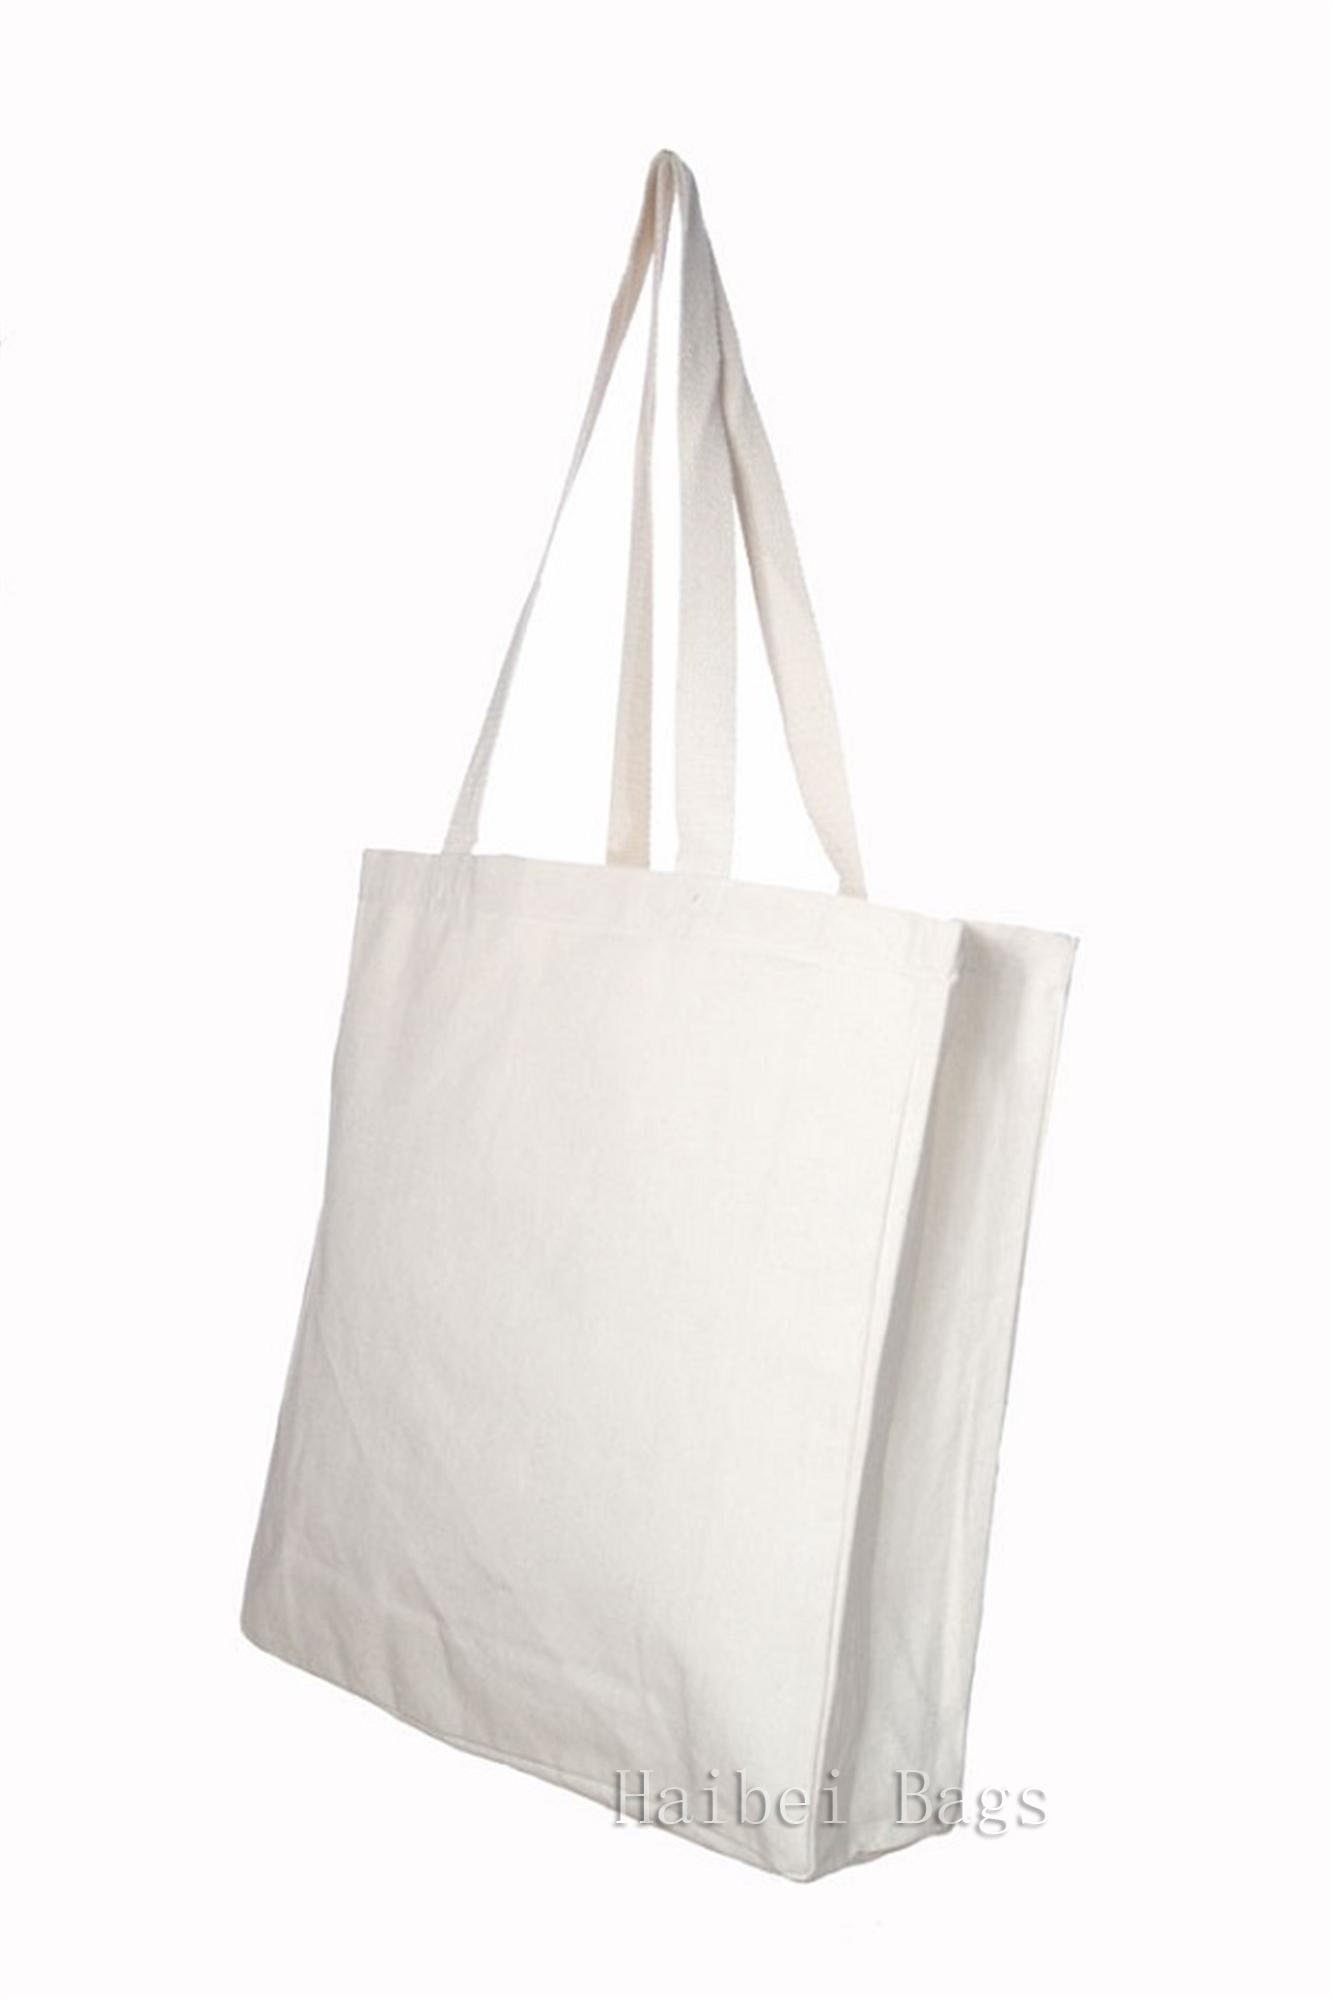 Custom Cotton Shopping / Tote Bag with 10cm Gussets (hbco-107)